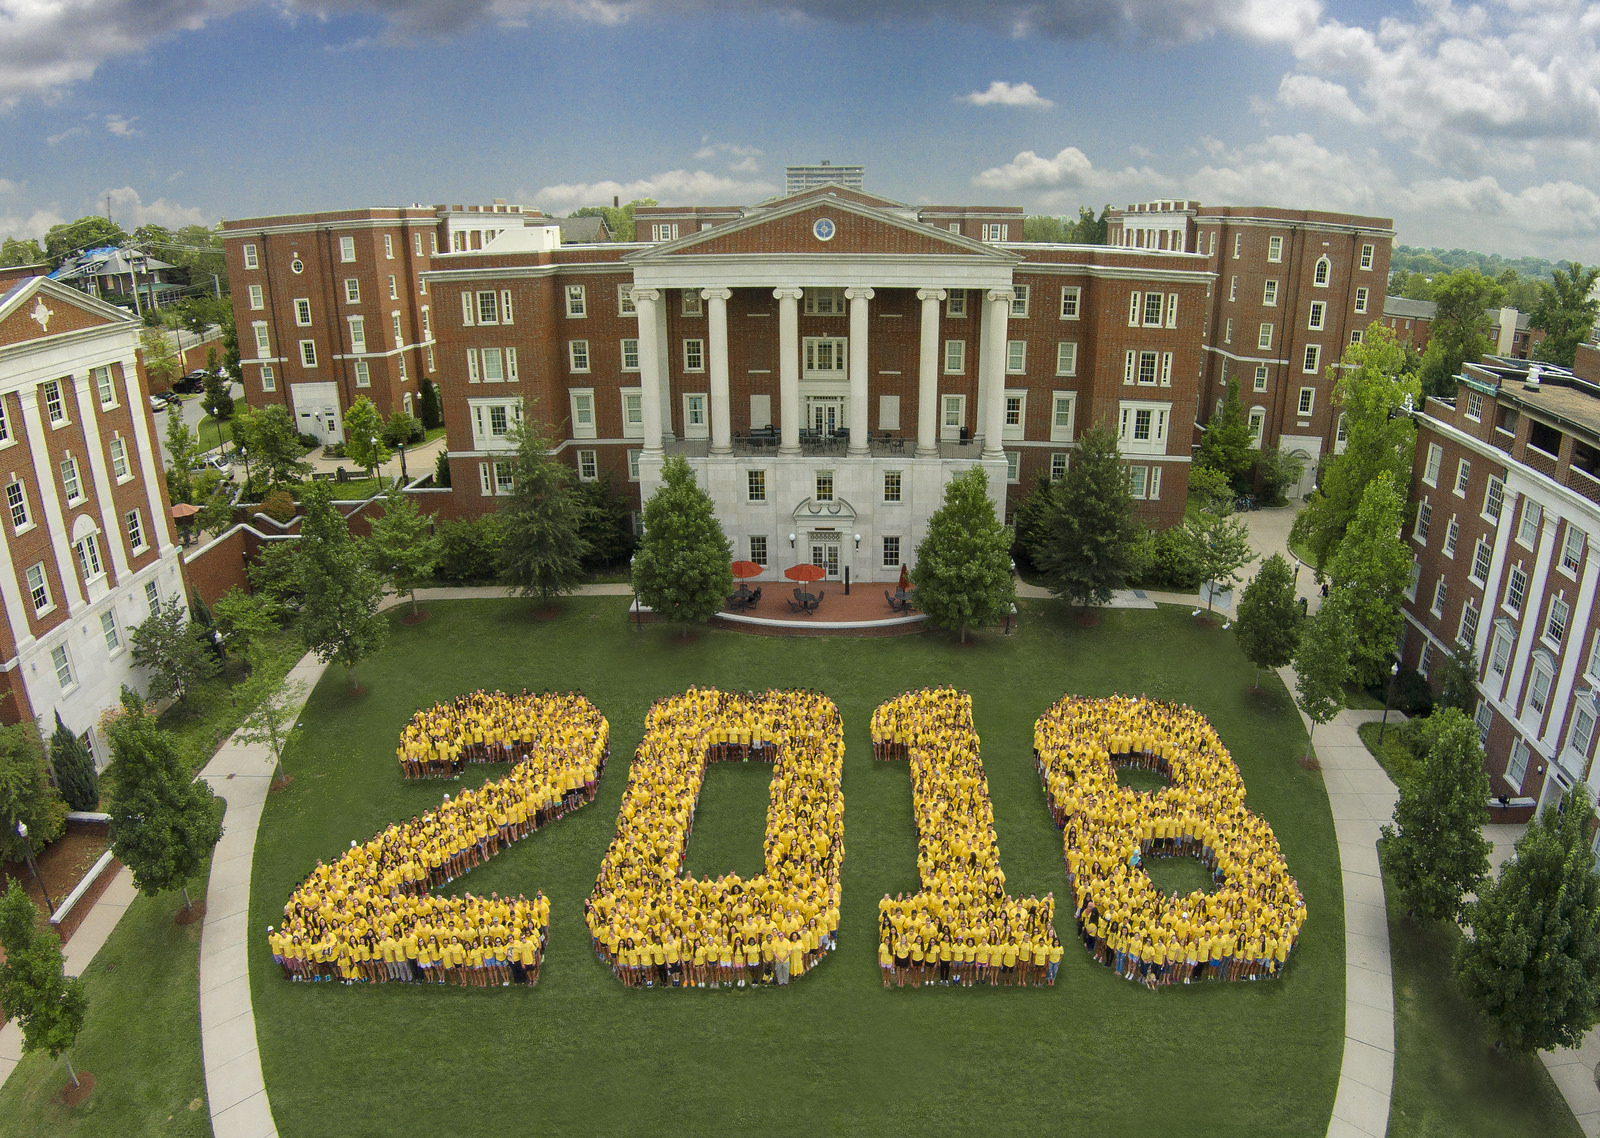 Class of 2018 spelling out 2018 on Commons Lawn